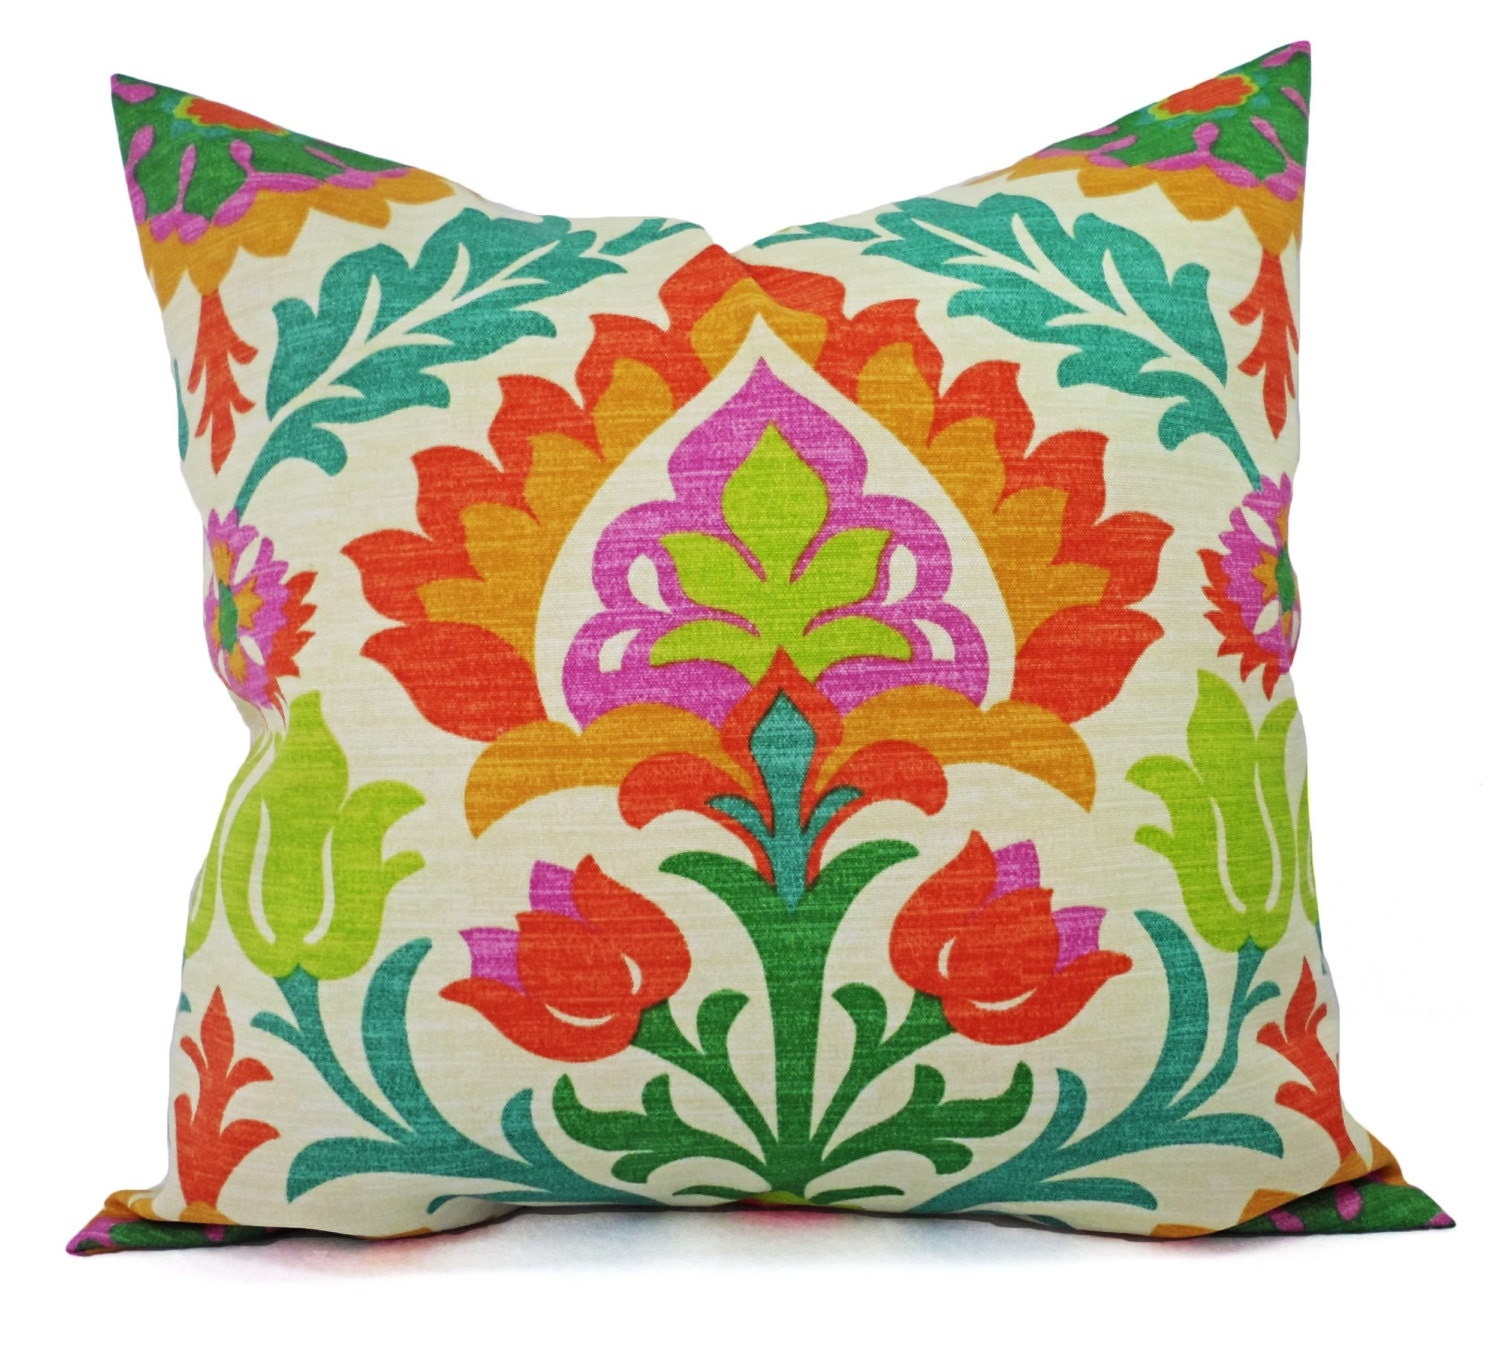 modern instyle images pillows instyledecor on for throw couch pillow orange best bed by pinterest decorative sofa